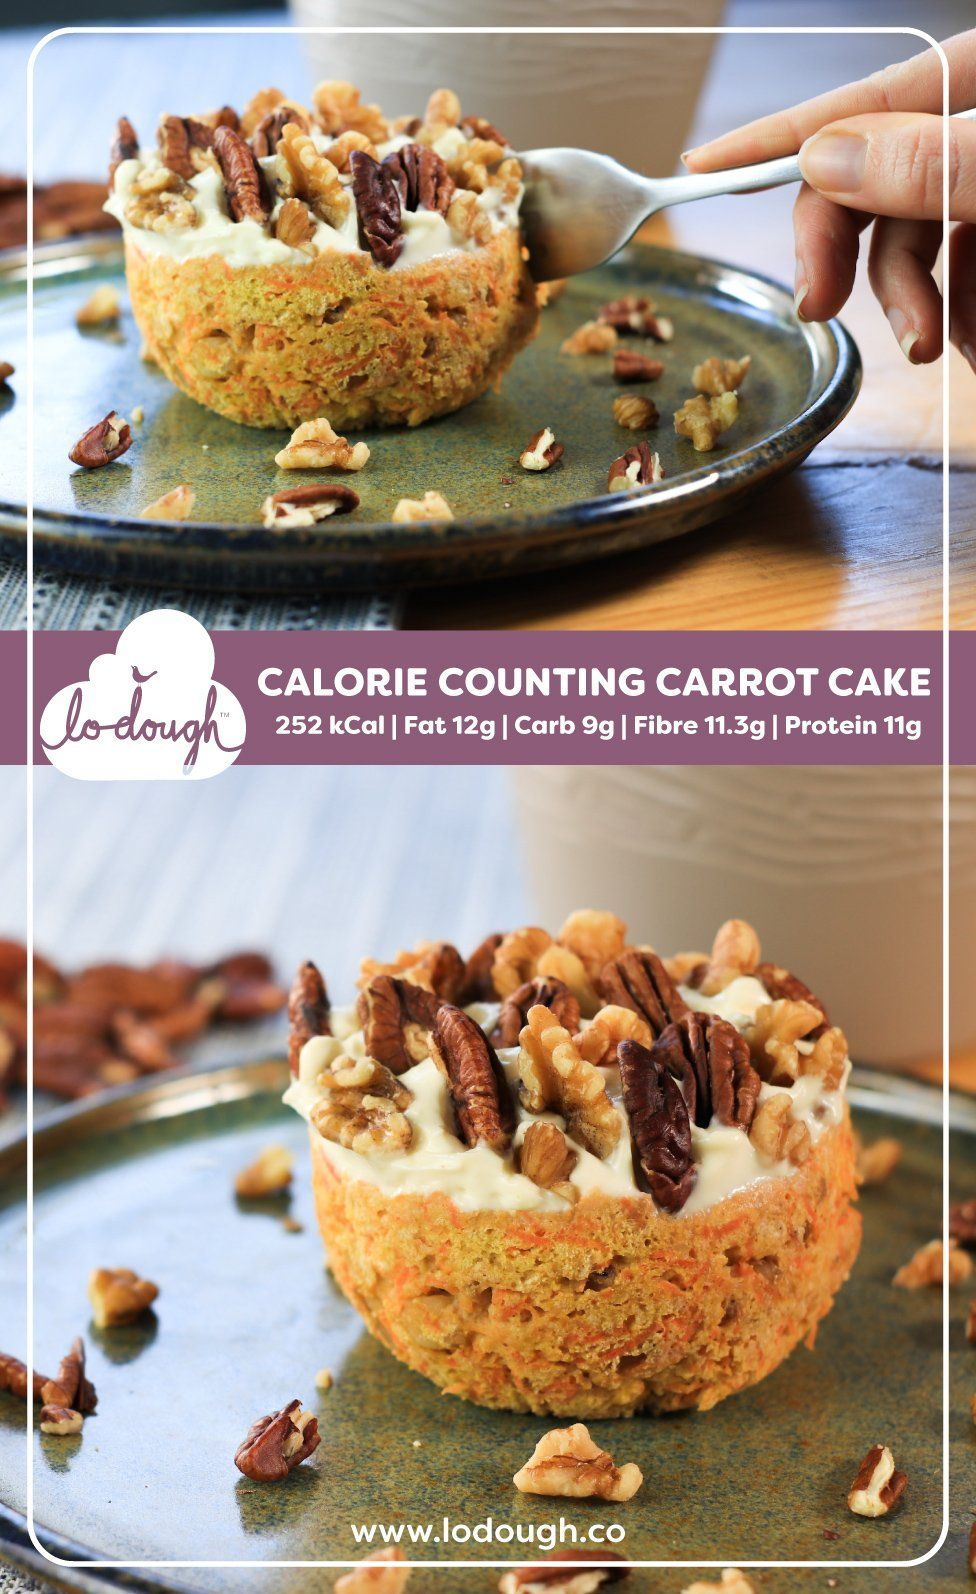 Calorie counting carrot cake recipe healthy dessert